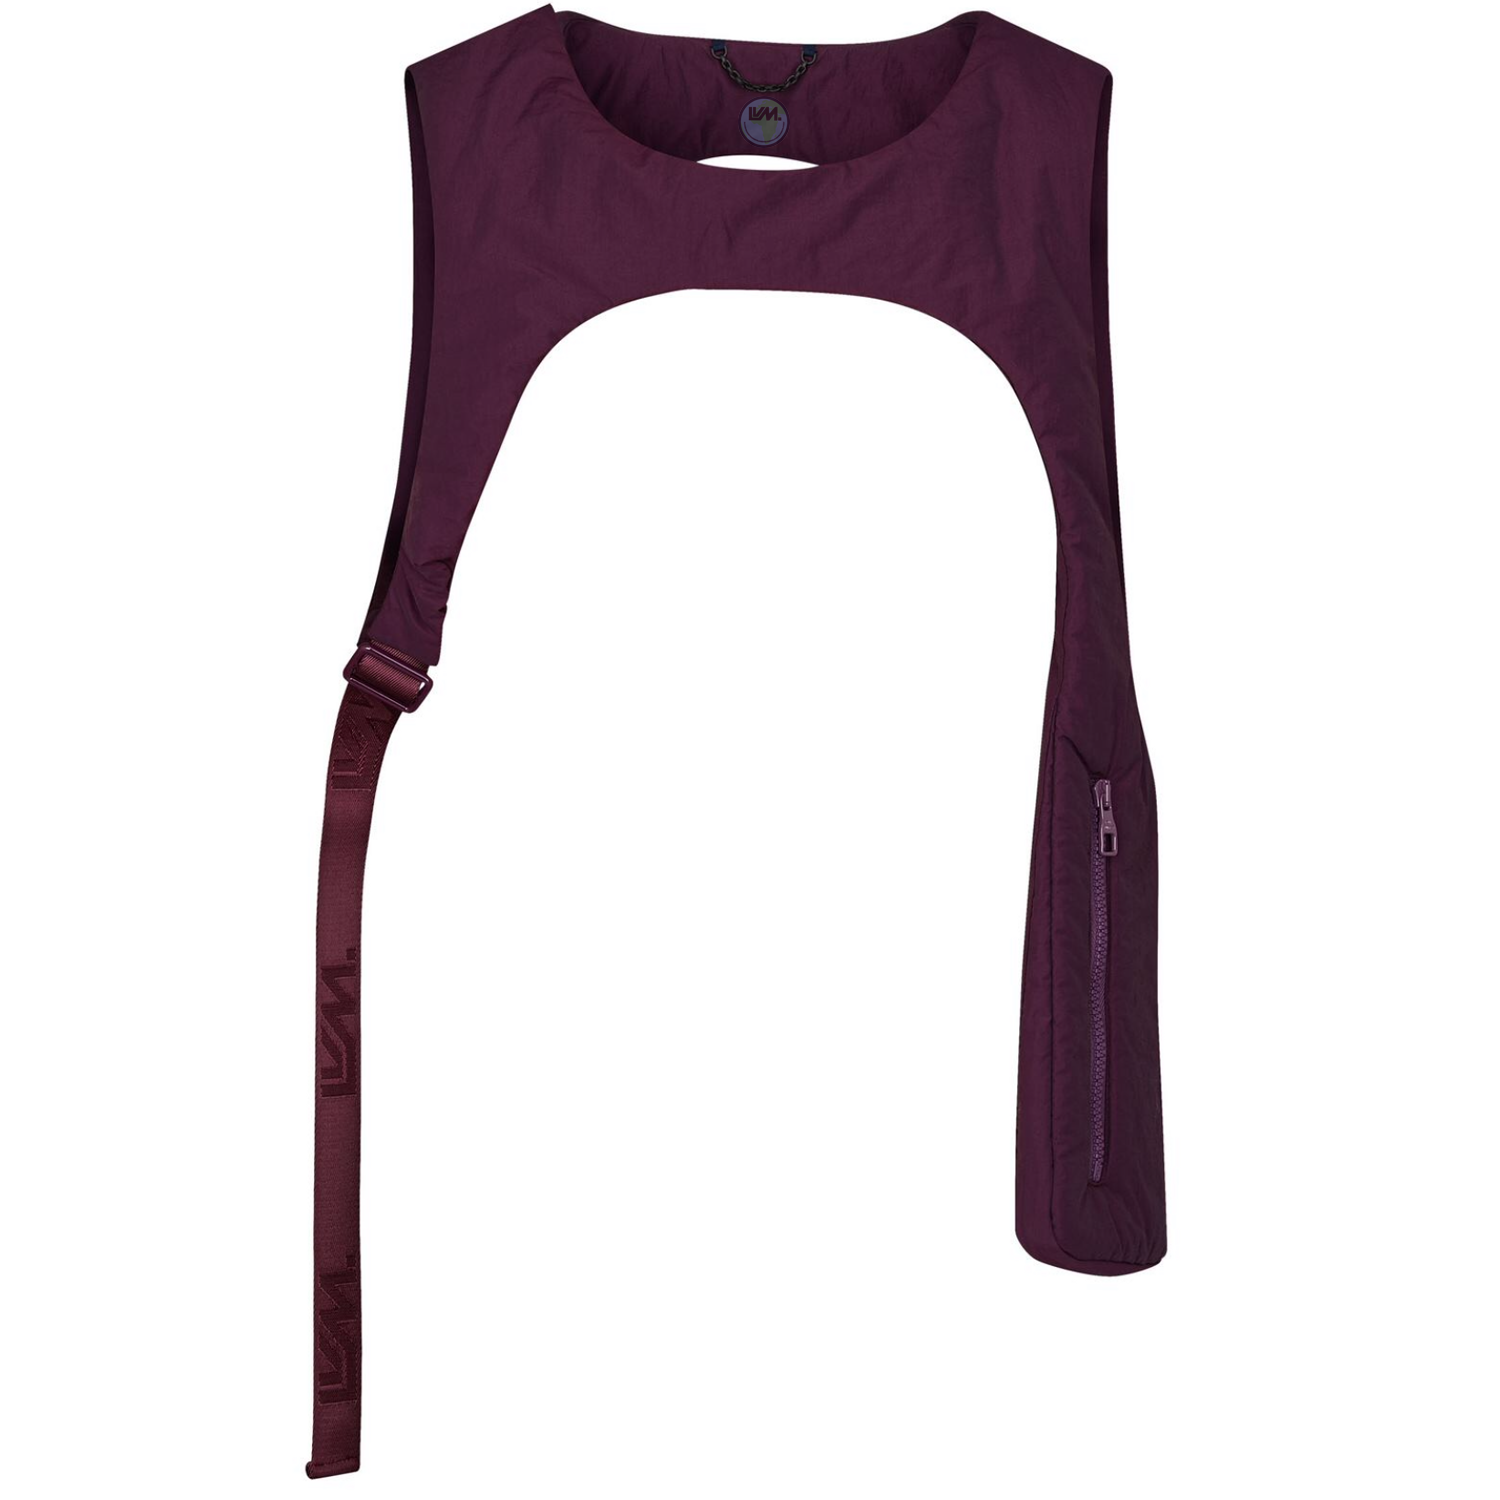 CUT AWAY VEST - €850 $1130m0177AUBERGINE